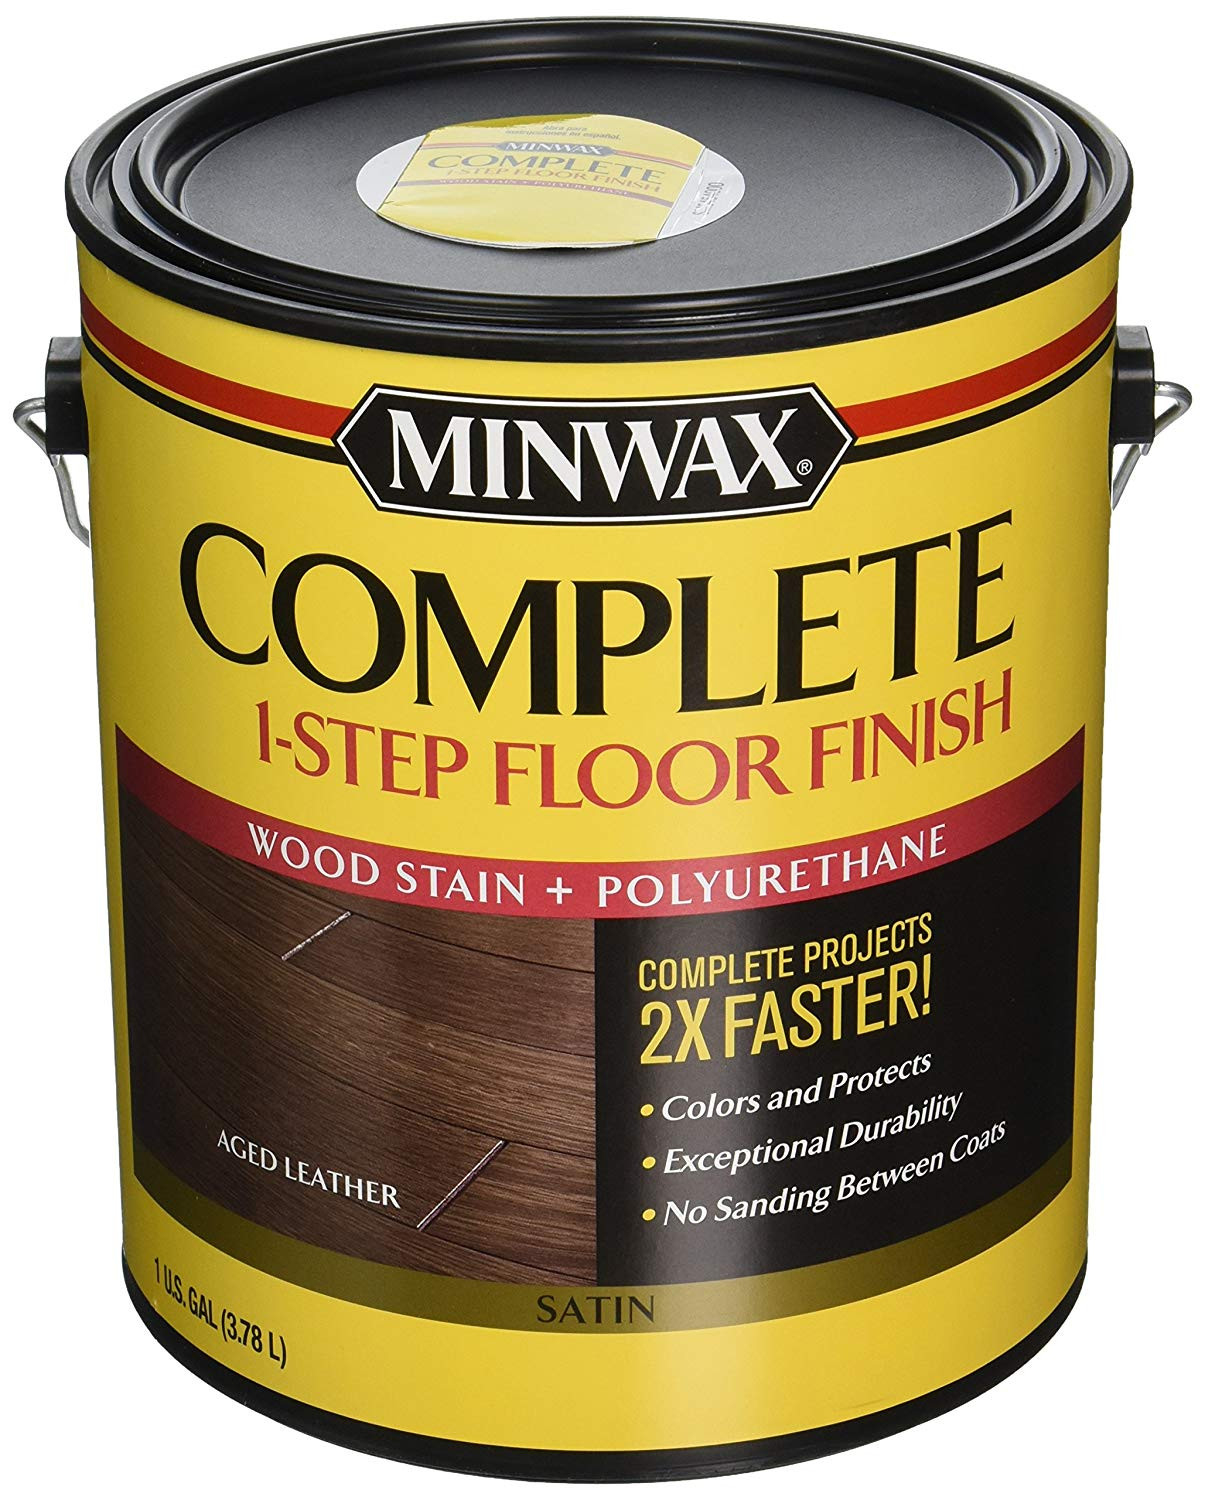 Hardwood Floor Refinishing Waterville Me Of Minwax 672050000 67205 1g Satin Aged Leather Complete 1 Step Floor Regarding Minwax 672050000 67205 1g Satin Aged Leather Complete 1 Step Floor Finish Amazon Com